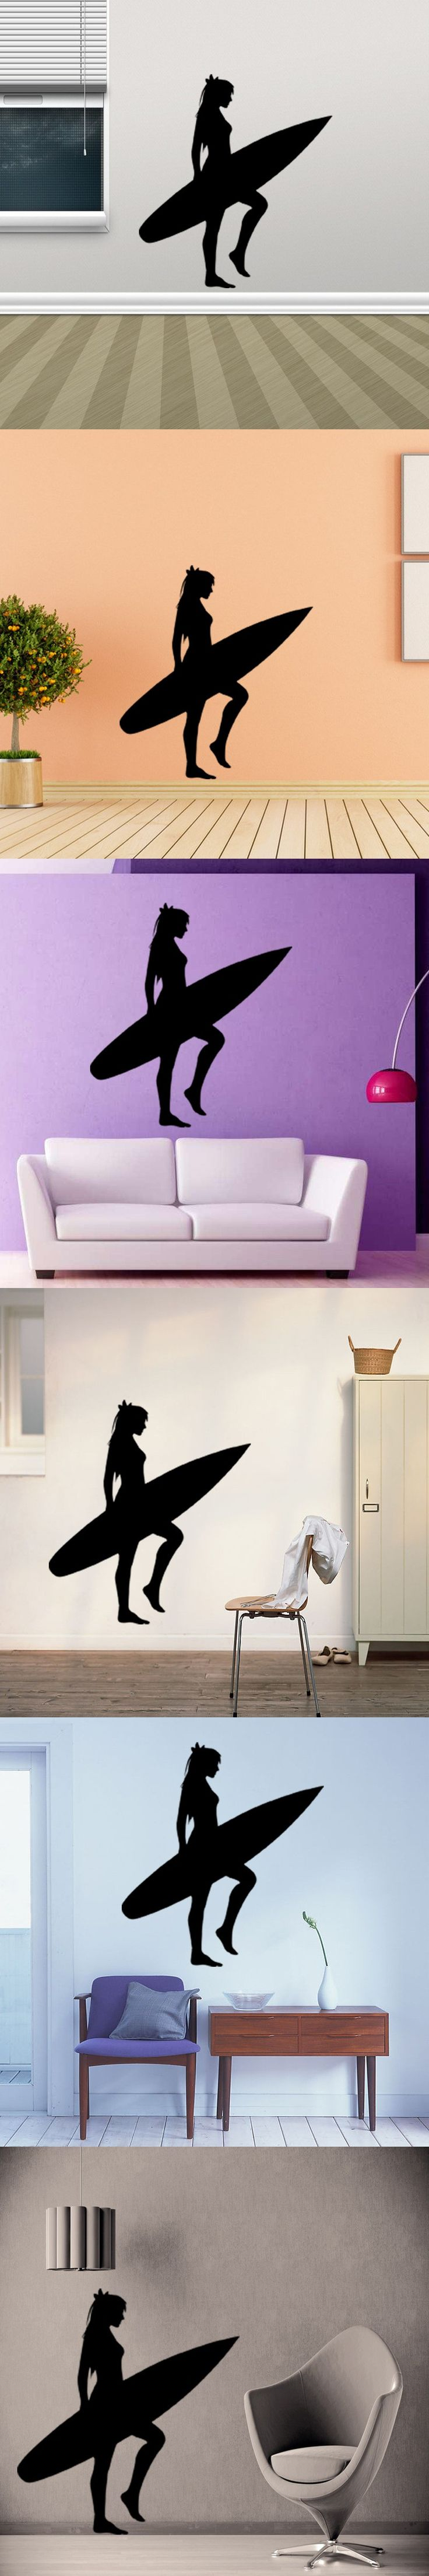 Best 25 girls surf room ideas on pinterest surfer girl rooms yc2024 europe personality beach surf girls wall sticker home decor carved stickers adesivo de parede hand living room bedroom amipublicfo Gallery